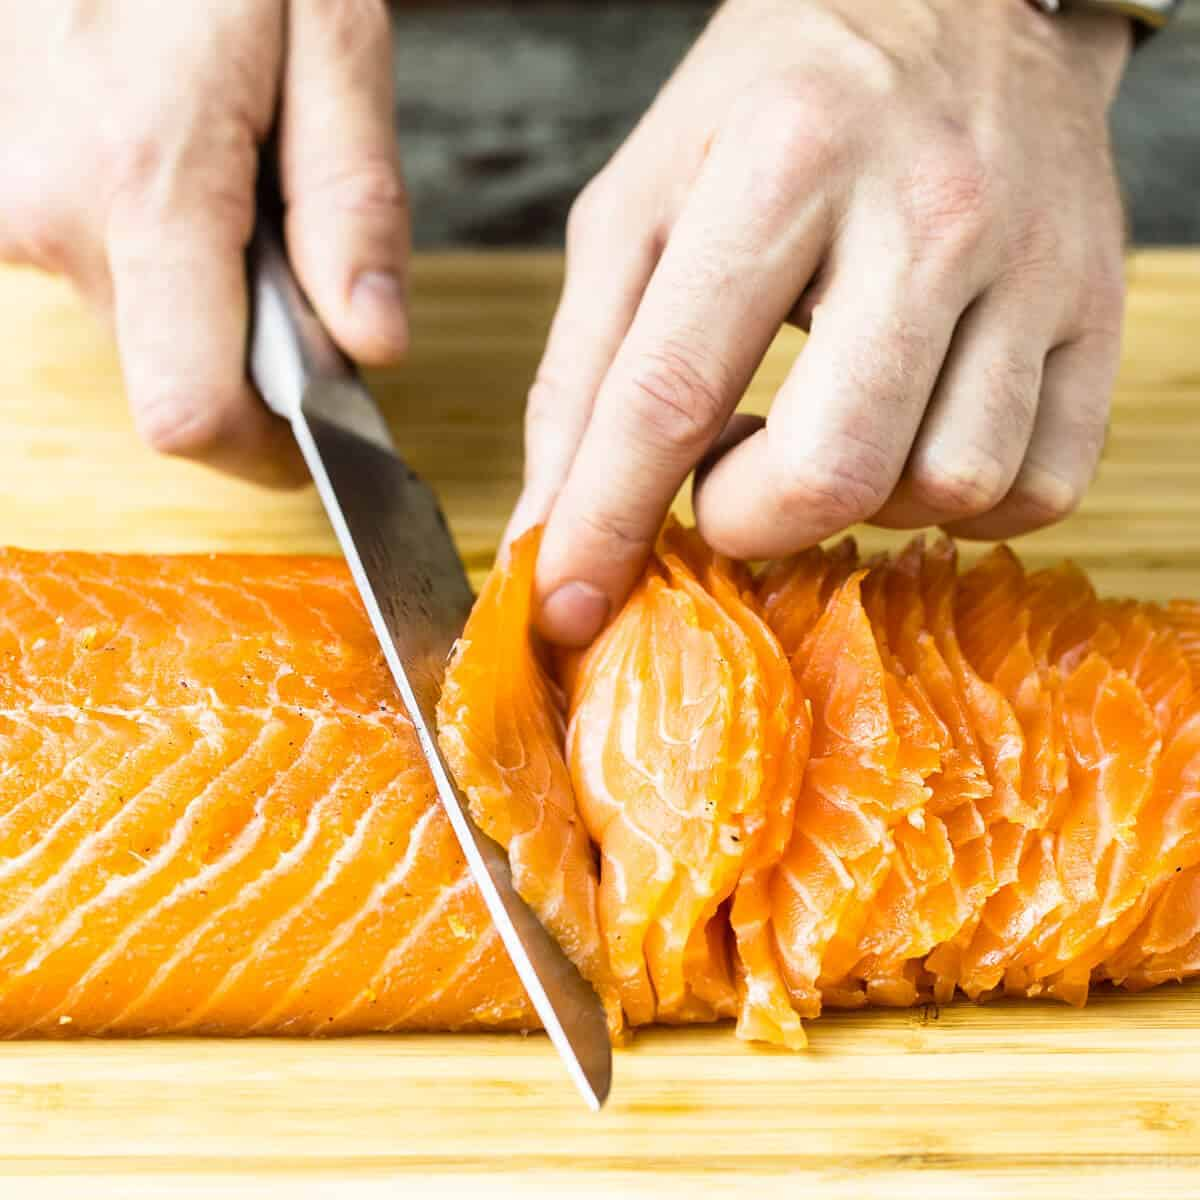 slicing cured salmon gravlax on a wooden board